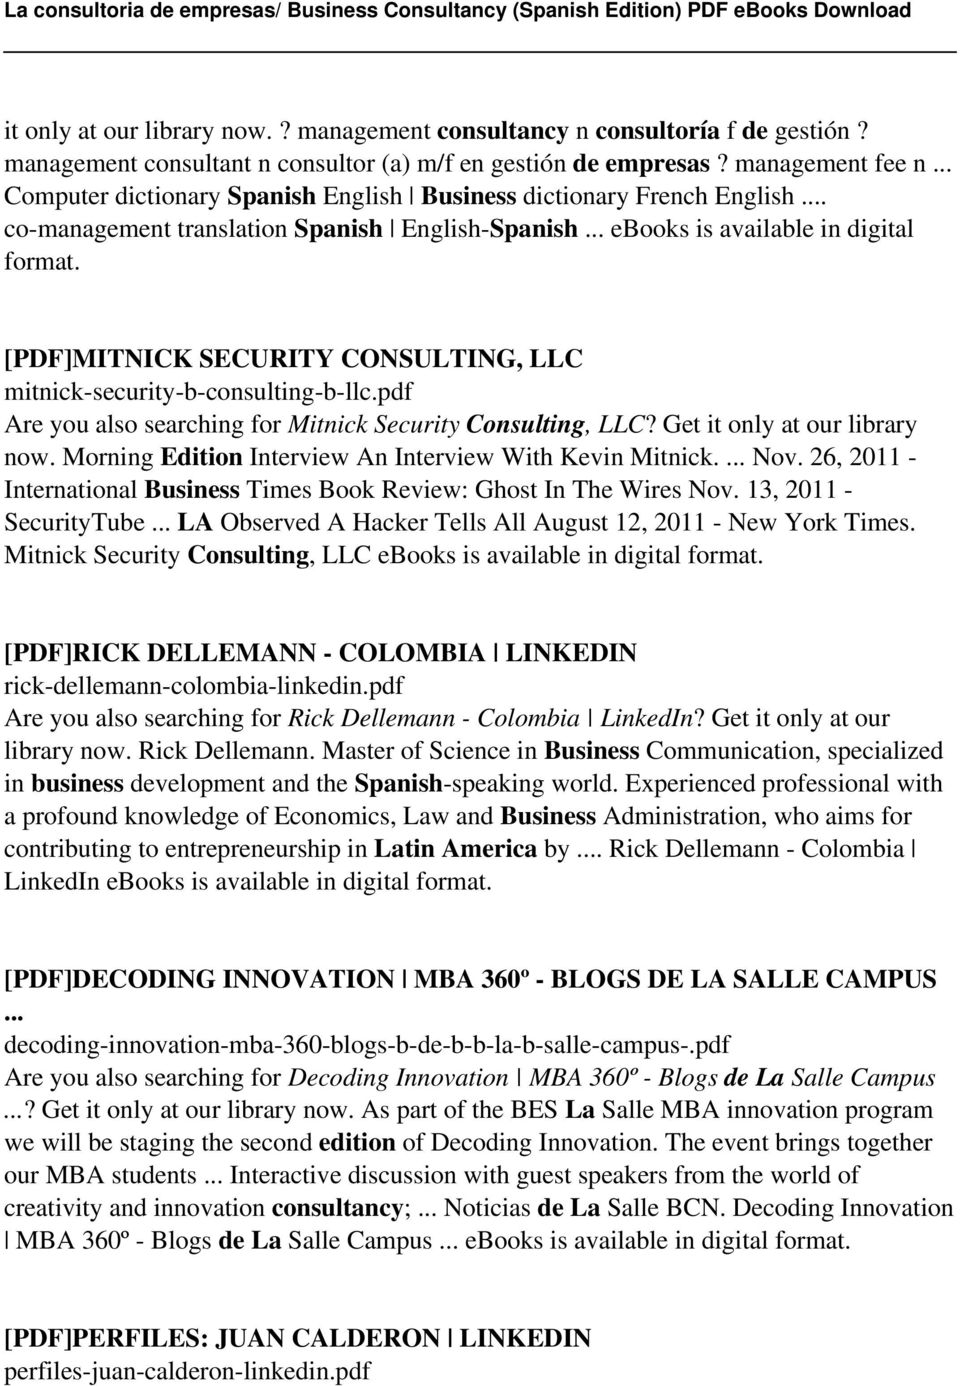 La Consultoria De Empresas Business Consultancy Spanish Edition Wire Christmas Lights Wiring Review Ebooks Pdfmitnick Security Consulting Llc Mitnick B